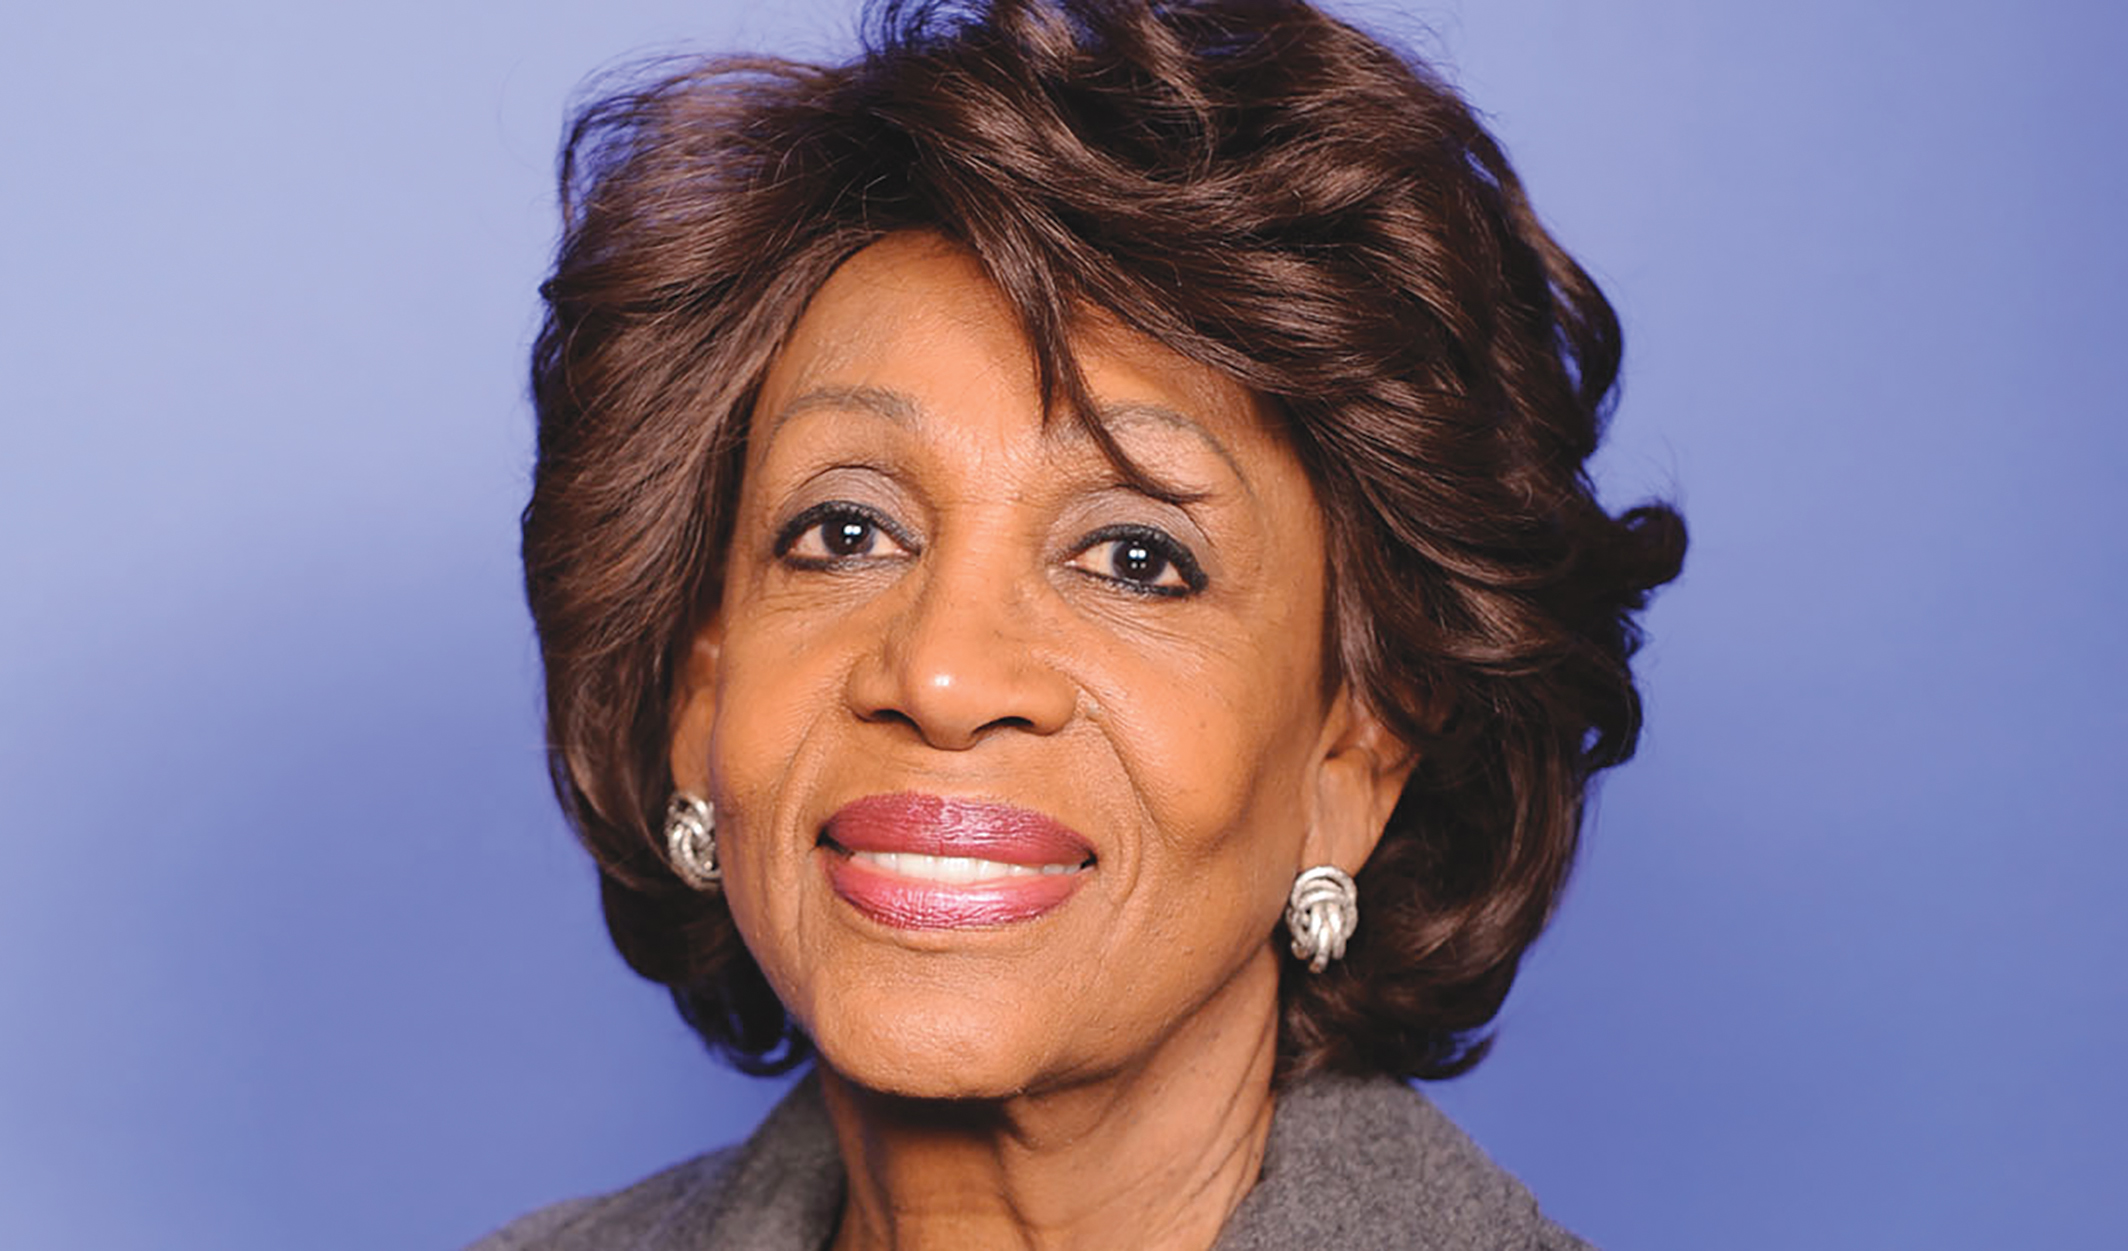 Congresswoman Maxine Waters (D-CA), Chairwoman of the House Financial Services Committee. (courtesy photo)